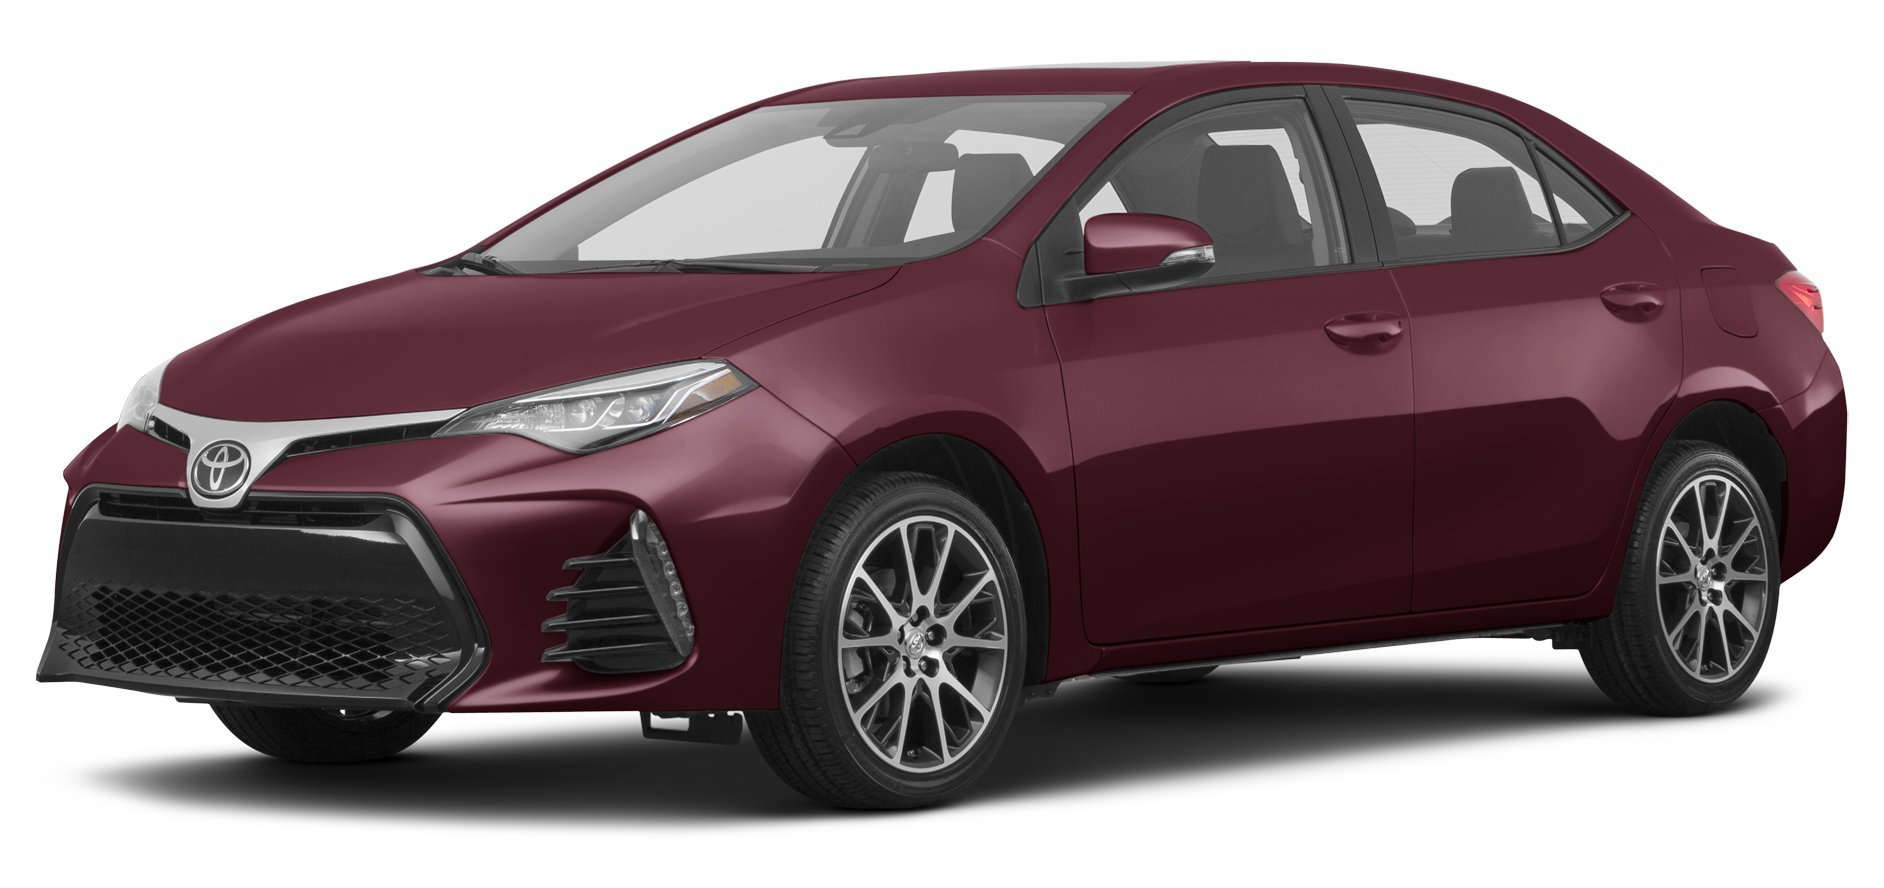 Amazoncom 2017 Toyota Corolla Reviews Images and Specs Vehicles